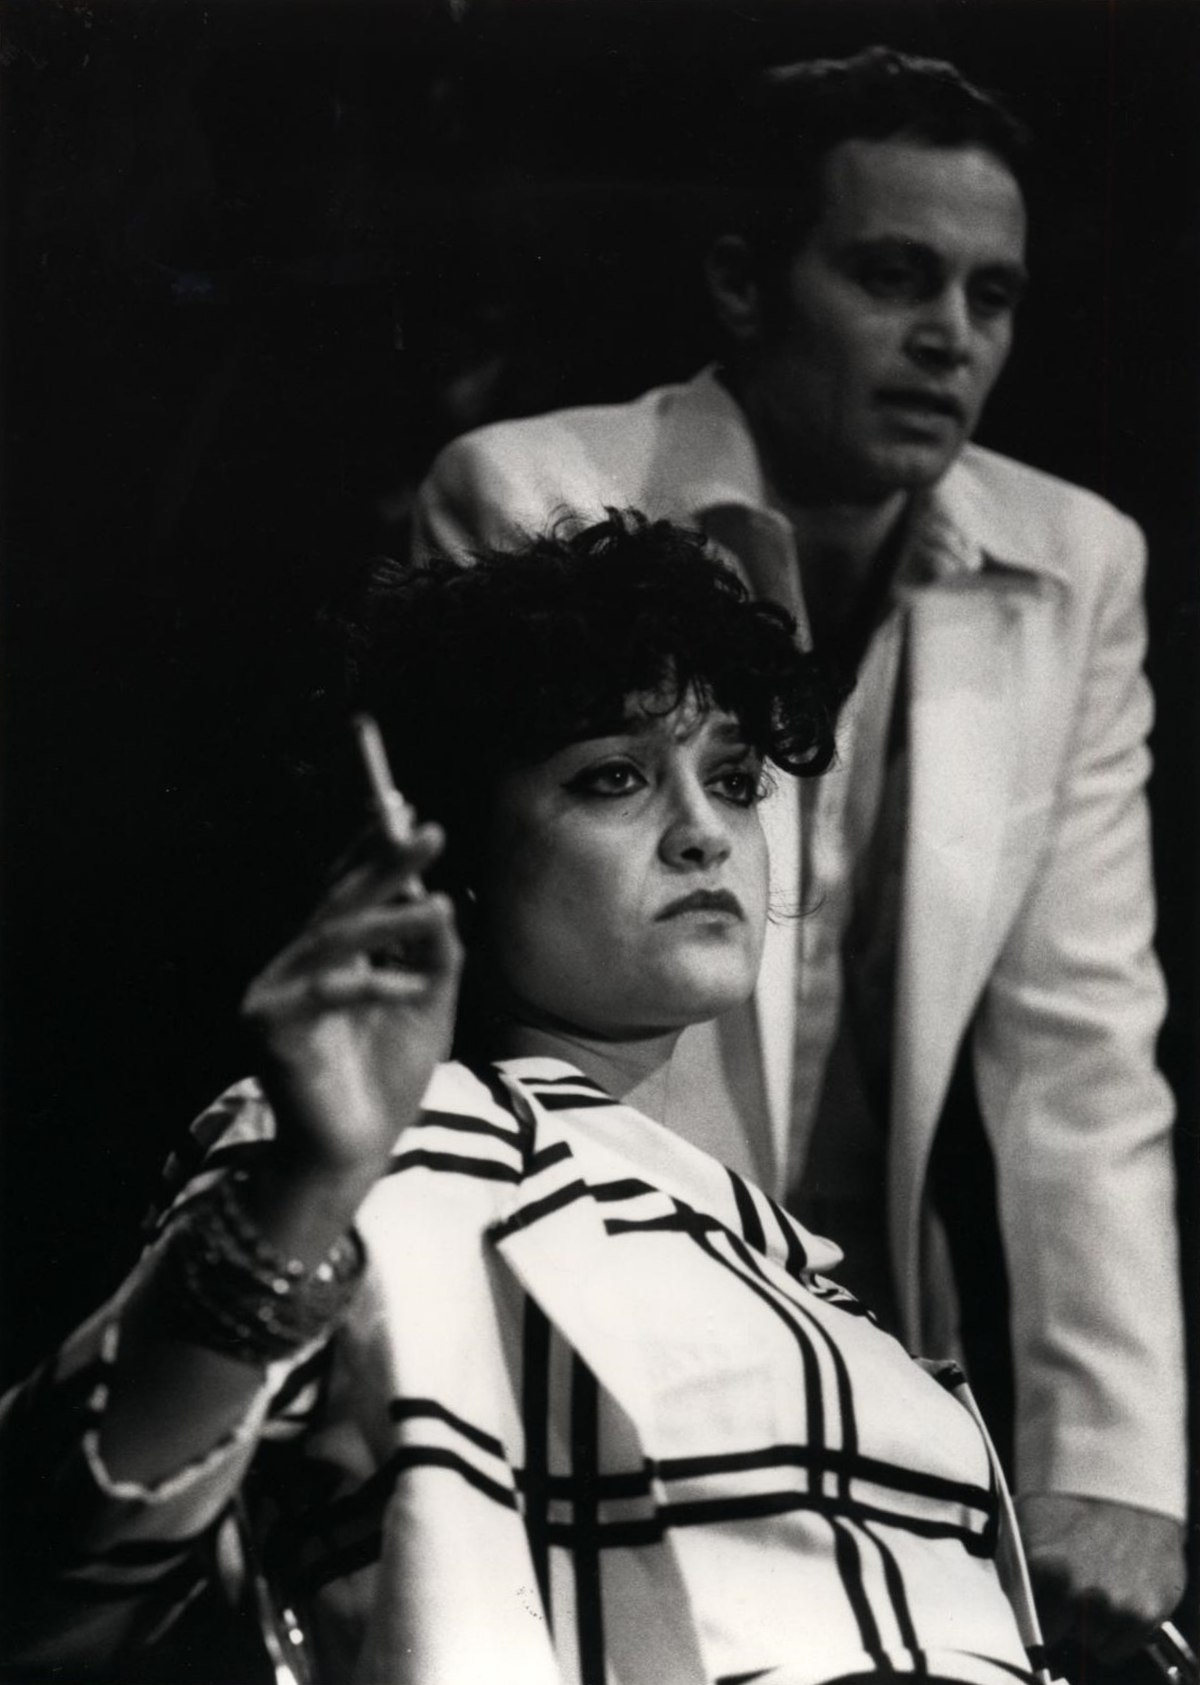 tennessee williams portrait of madonna 1 character(s) - dramatic, contemporary, suitable for all ages, copyrighted, 20th century, 1901-1950.